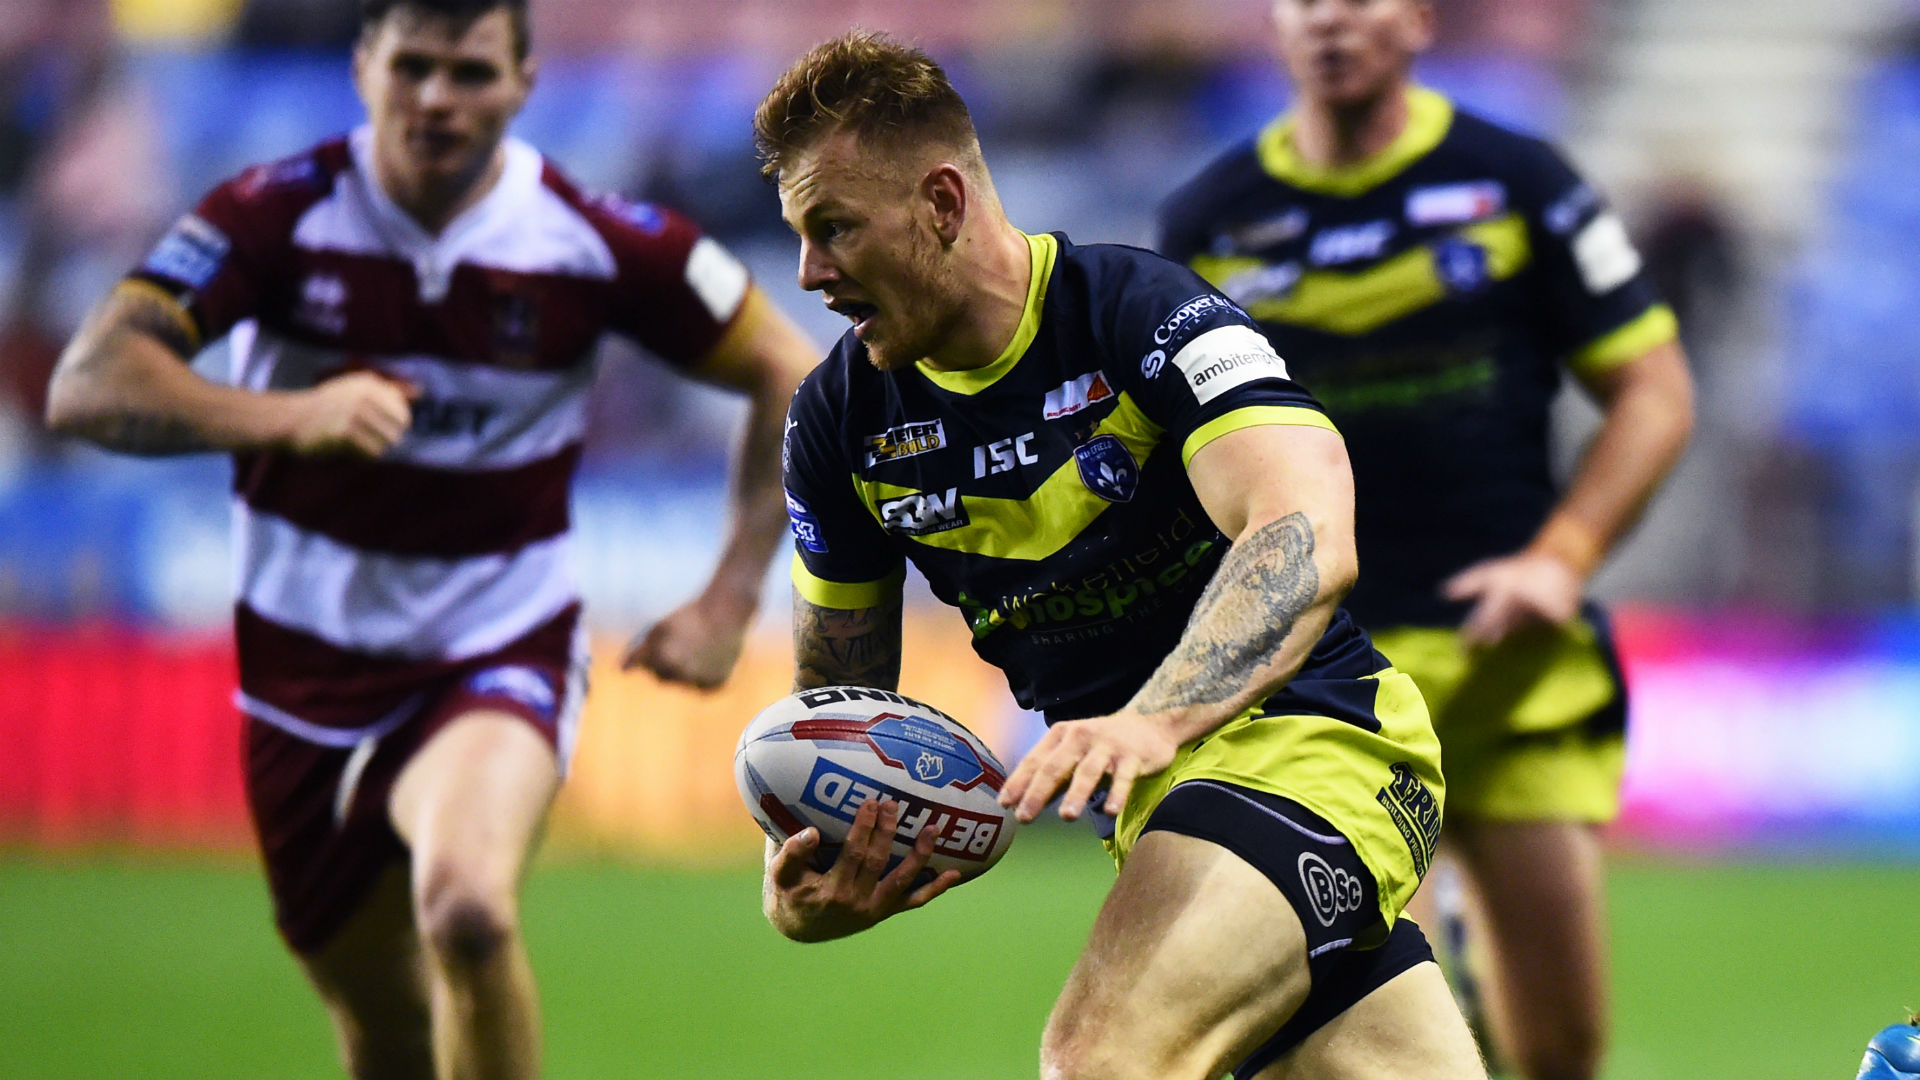 Wakefield wing Johnstone suffers ACL injury